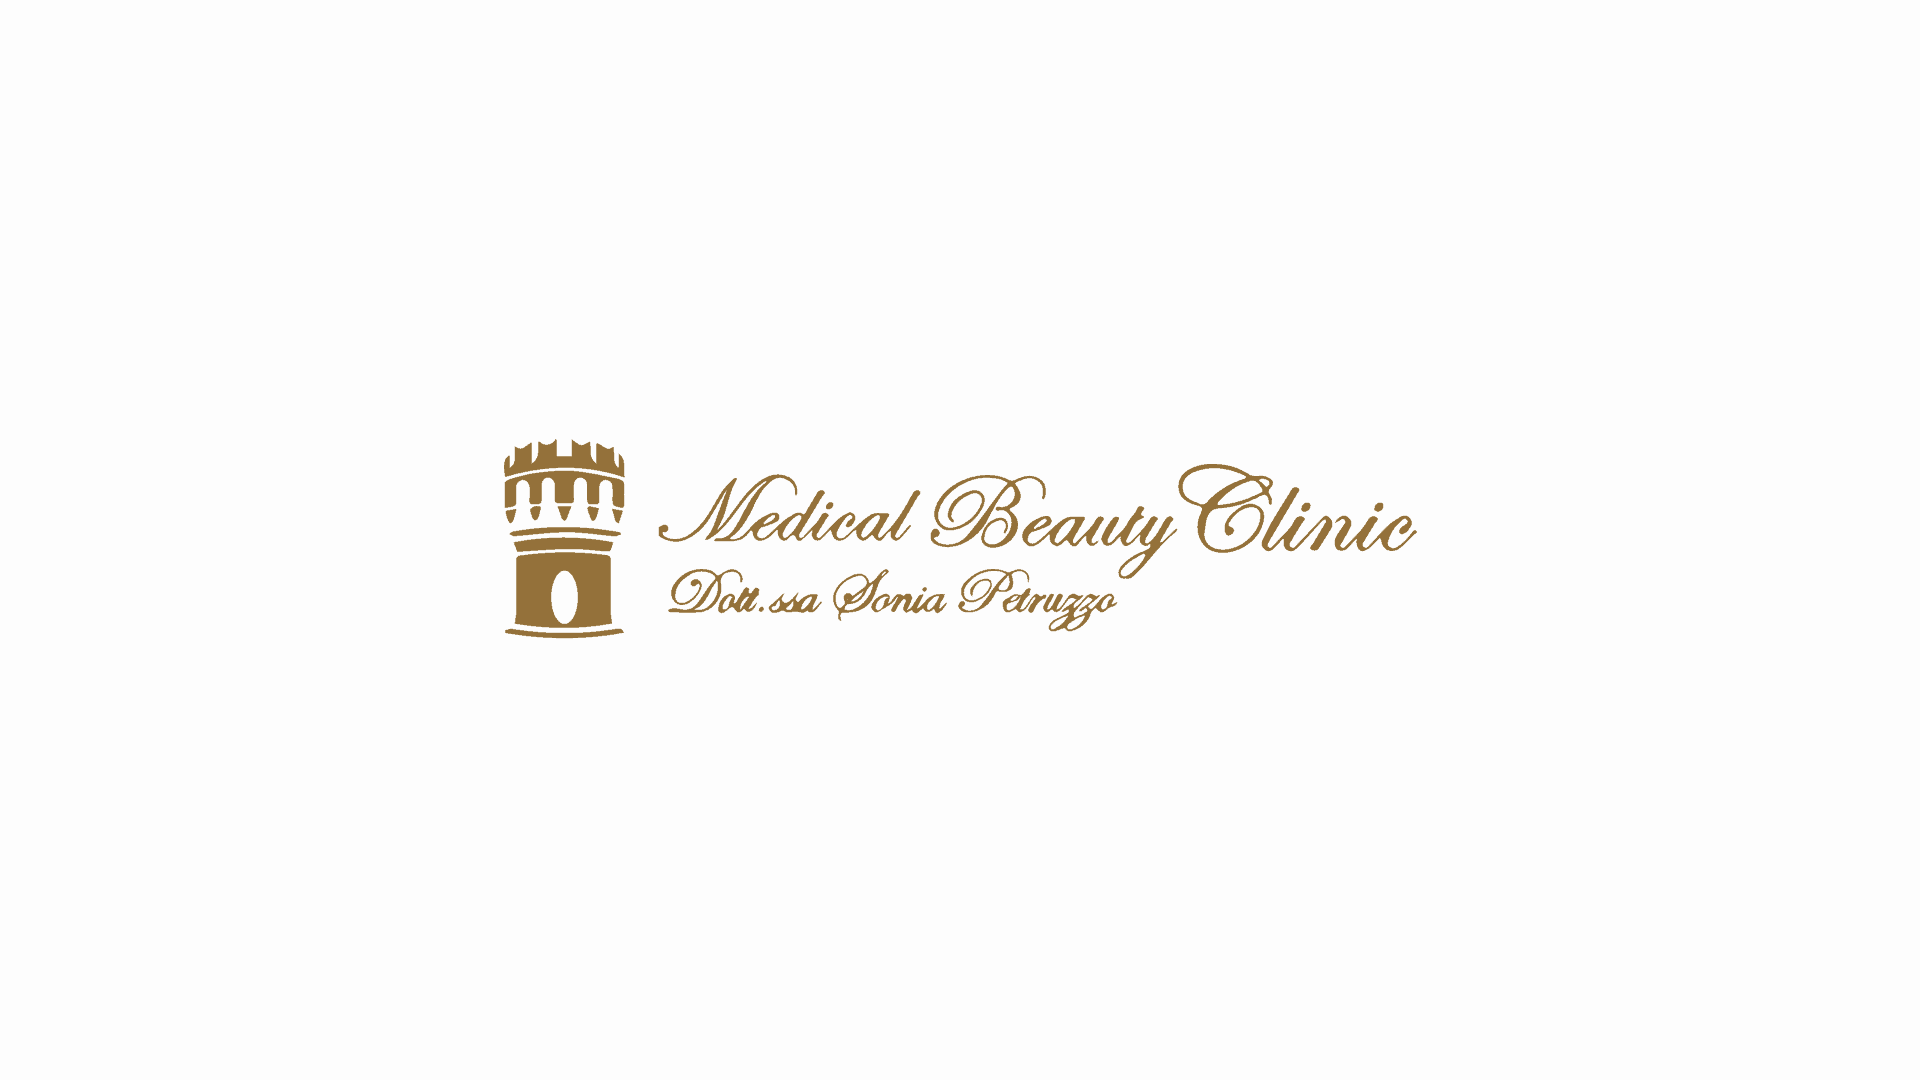 Medical Beauty Clinic